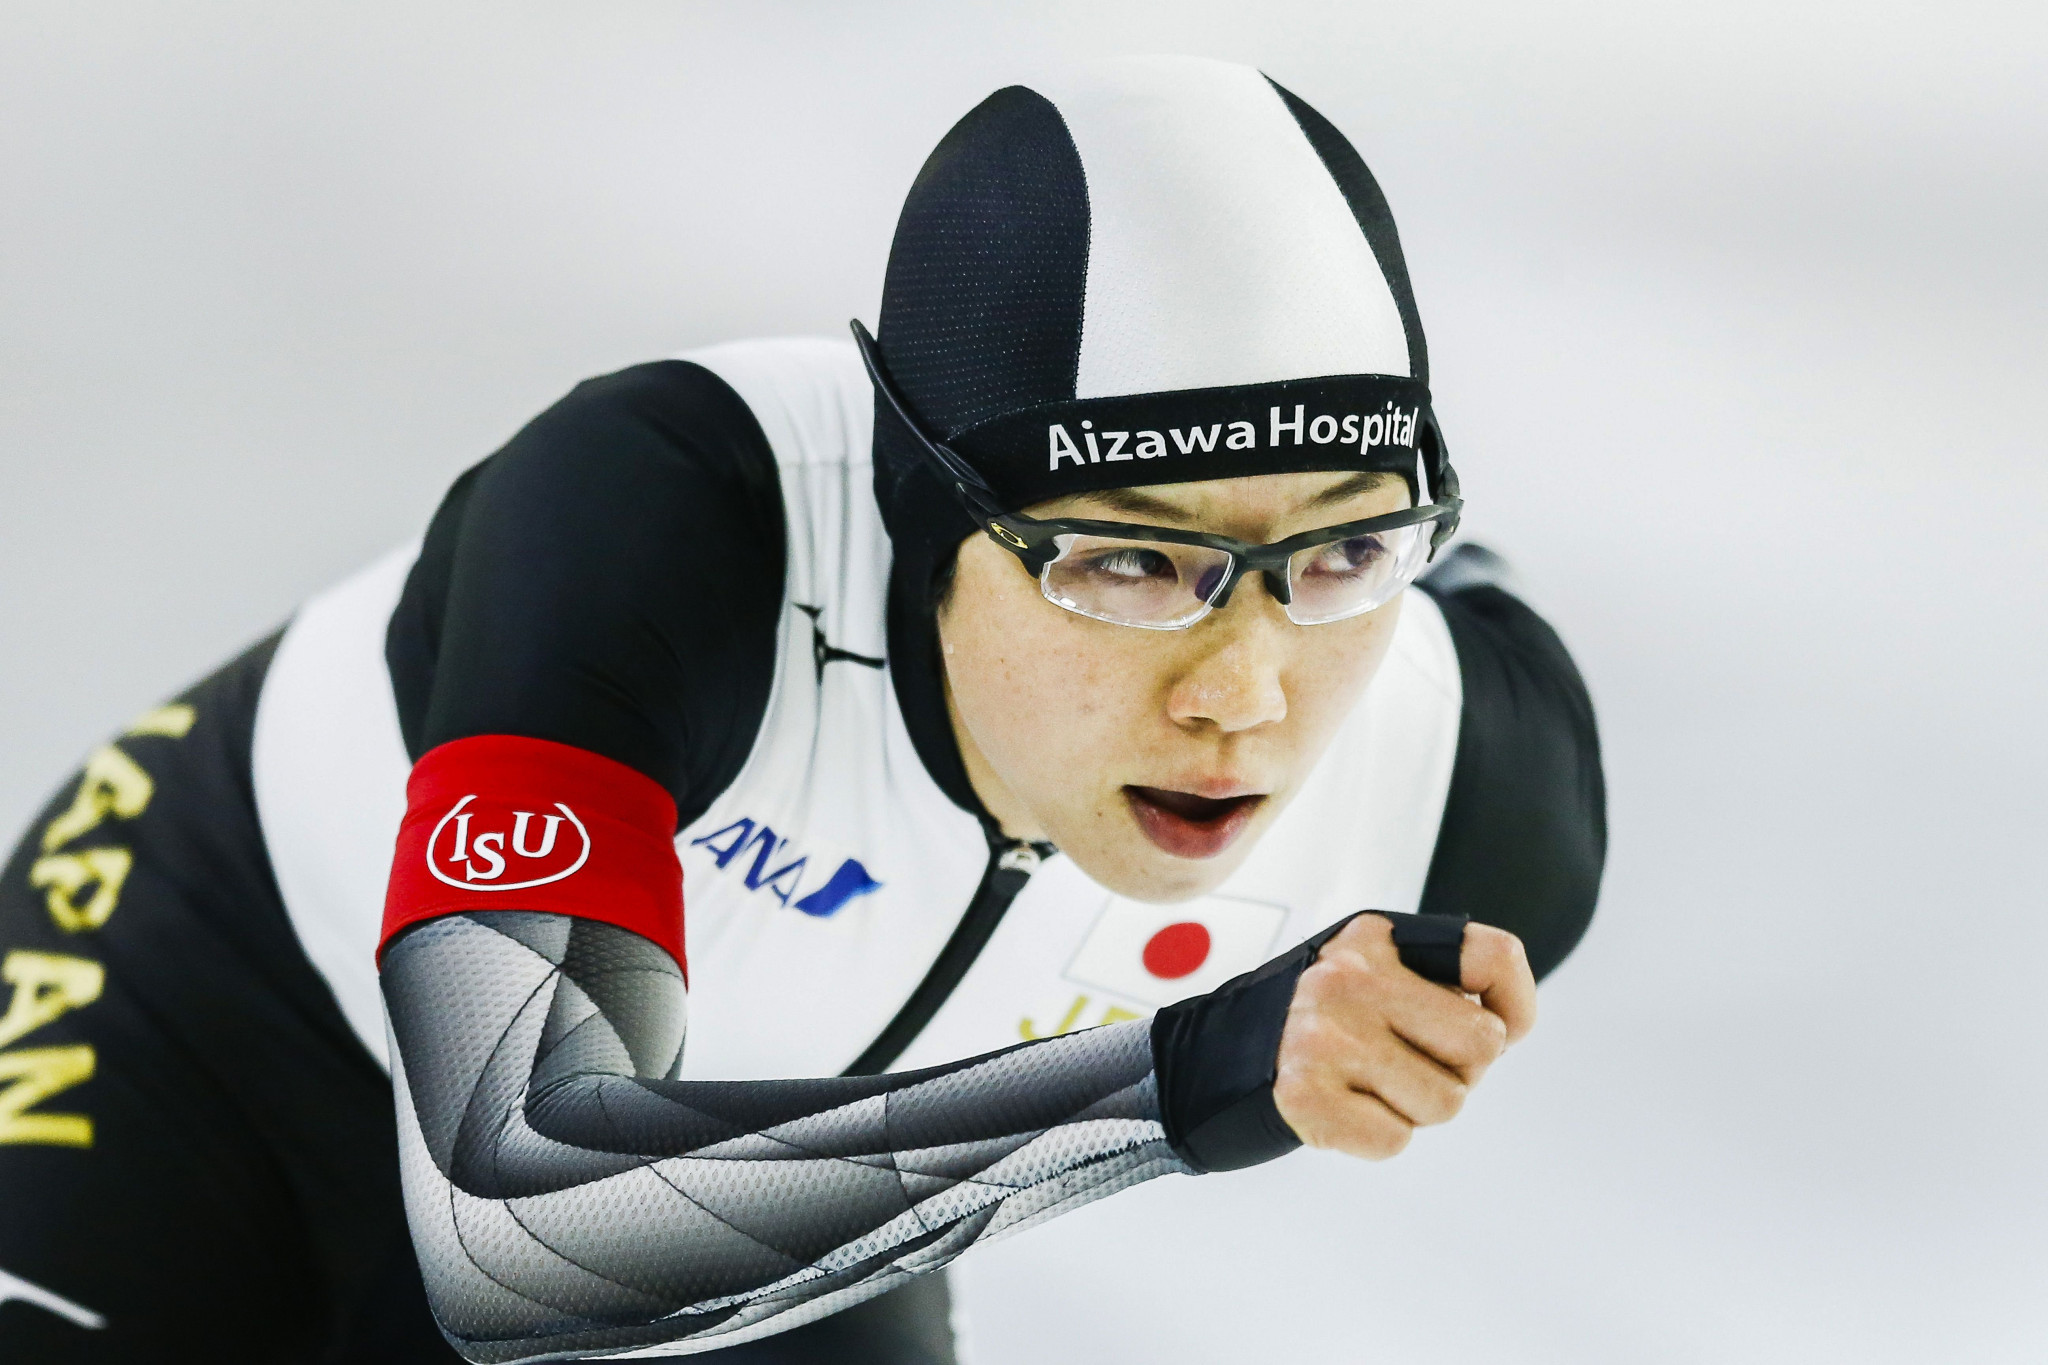 Kodaira eyes return to winning ways at ISU Speed Skating World Cup in Poland